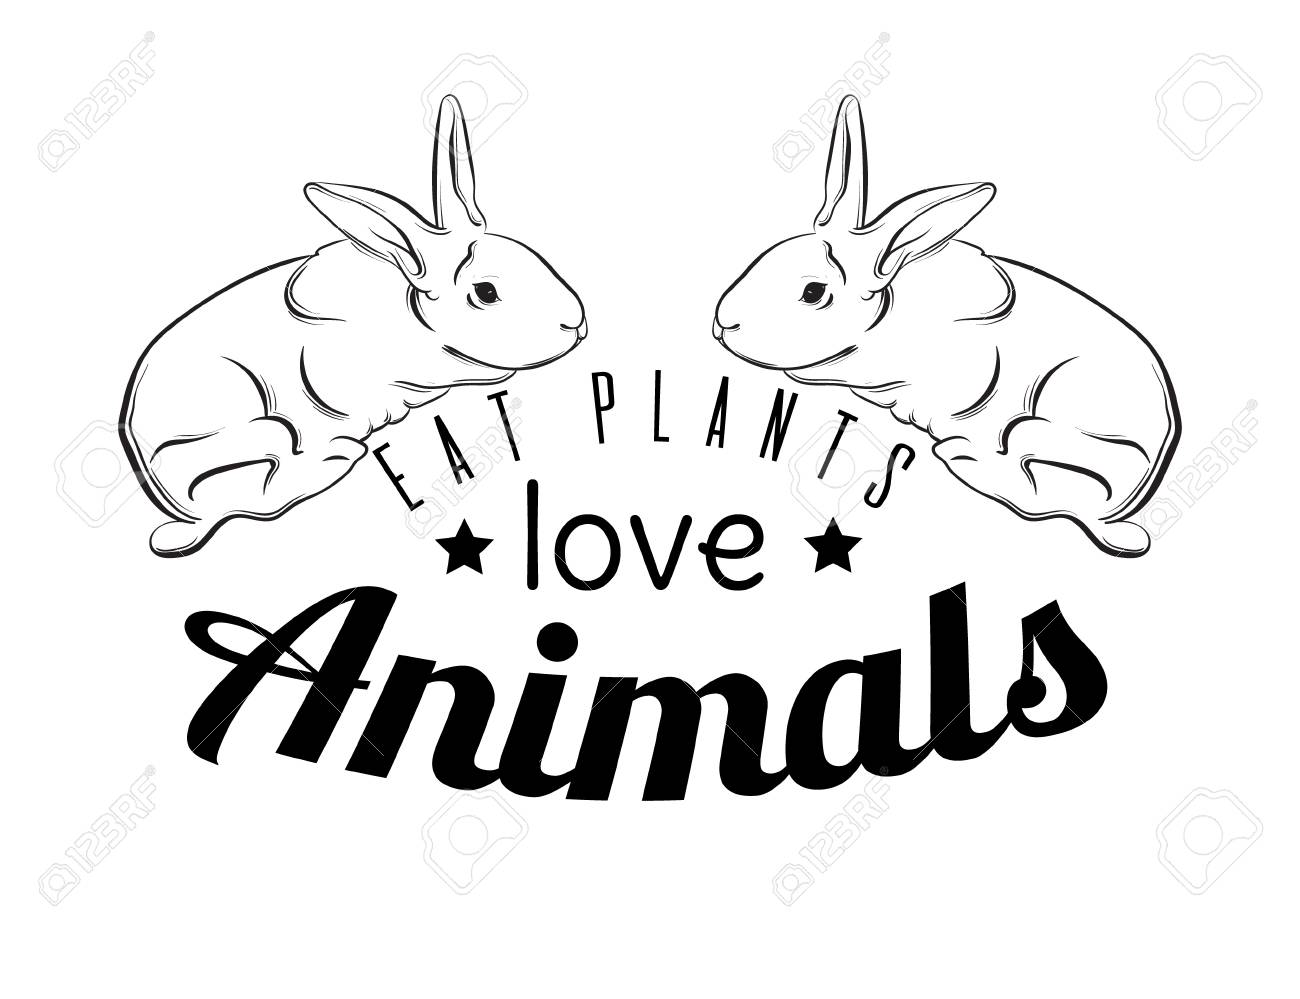 1300x999 Eat Plants Love Animals. Quote Typographical Background For Vegan